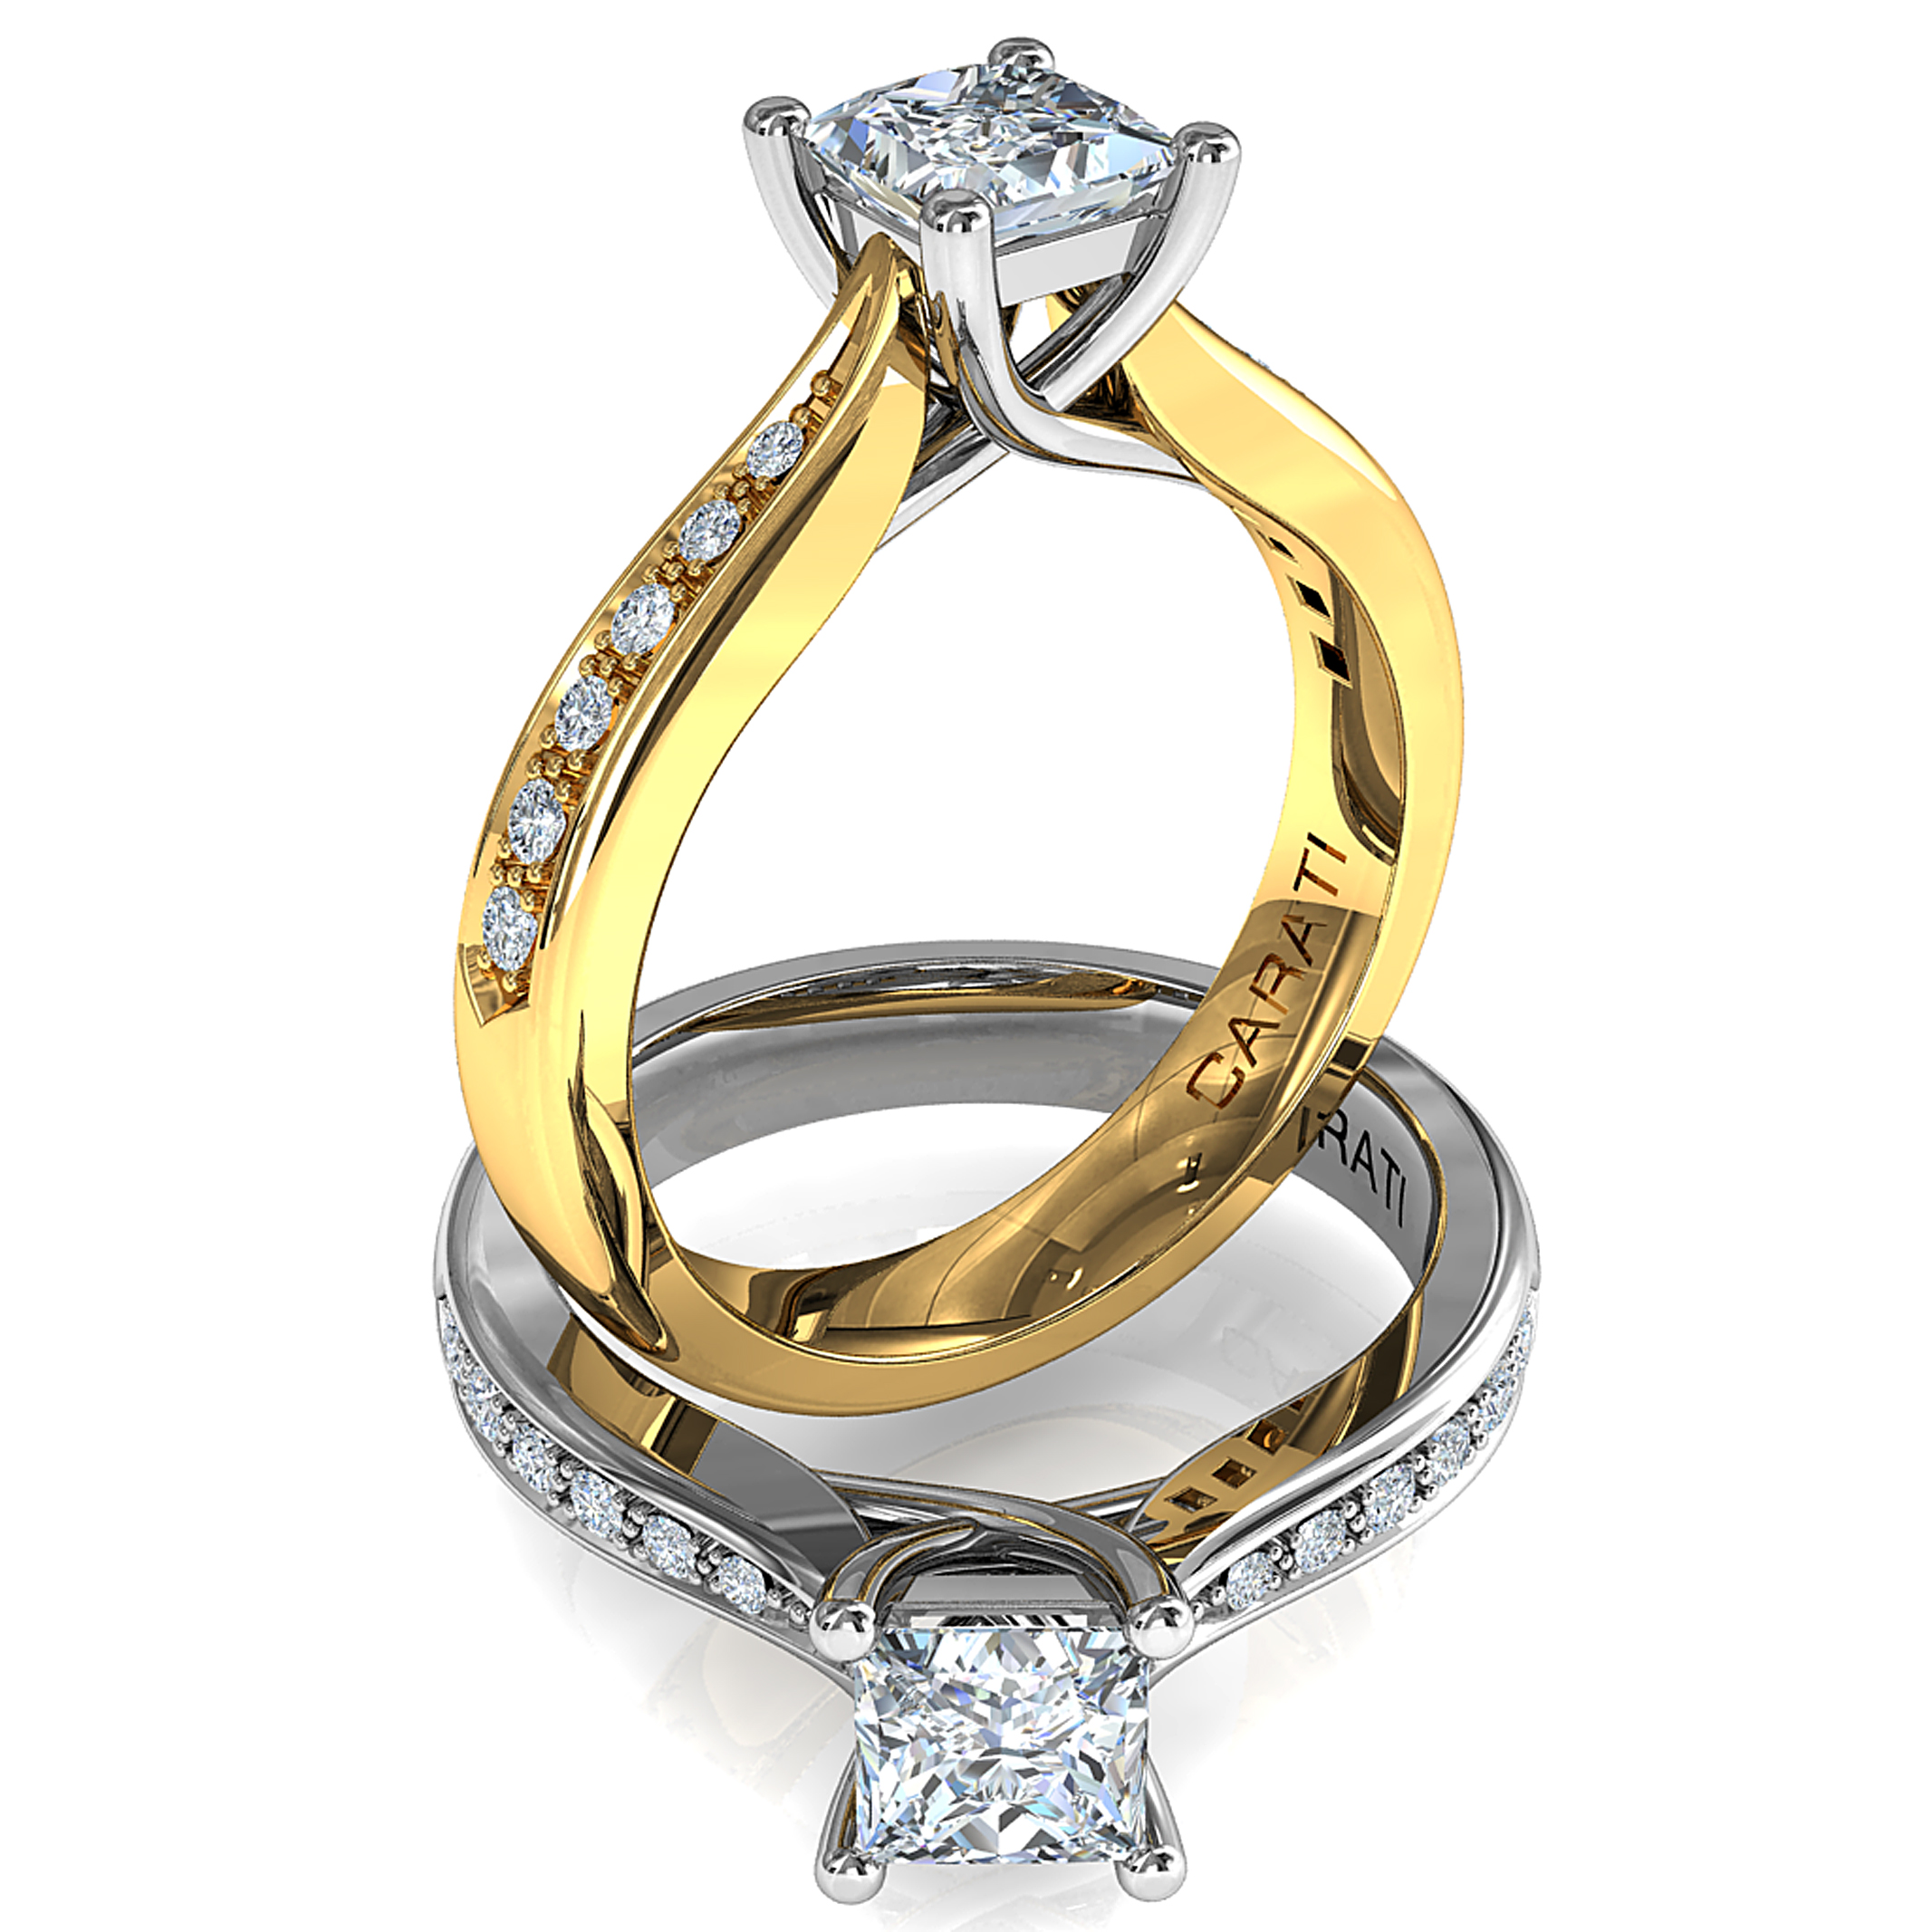 Princess Cut Solitaire Diamond Engagement Ring, 4 Claws on a Bead Set Band with an Undersweep Setting.